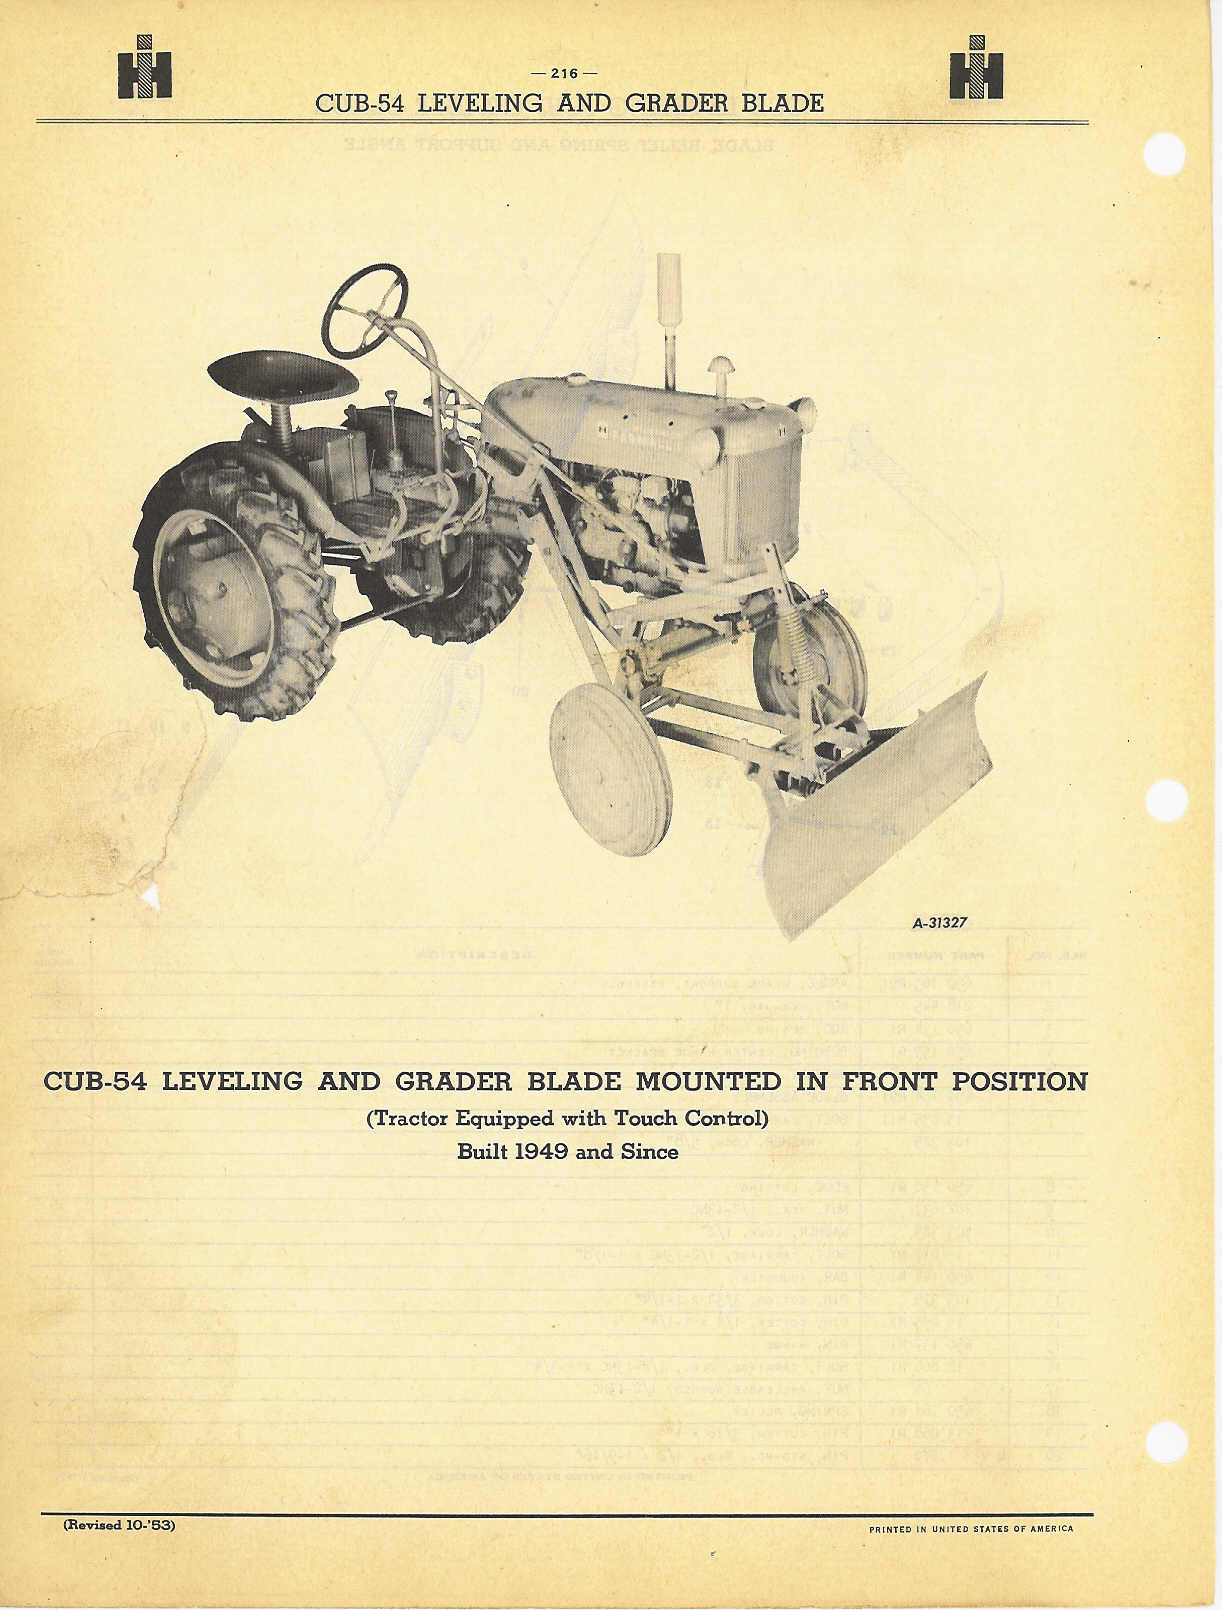 hight resolution of cub leveling and grader blade farmall 400 tractor diagram cub leveling and grader blade